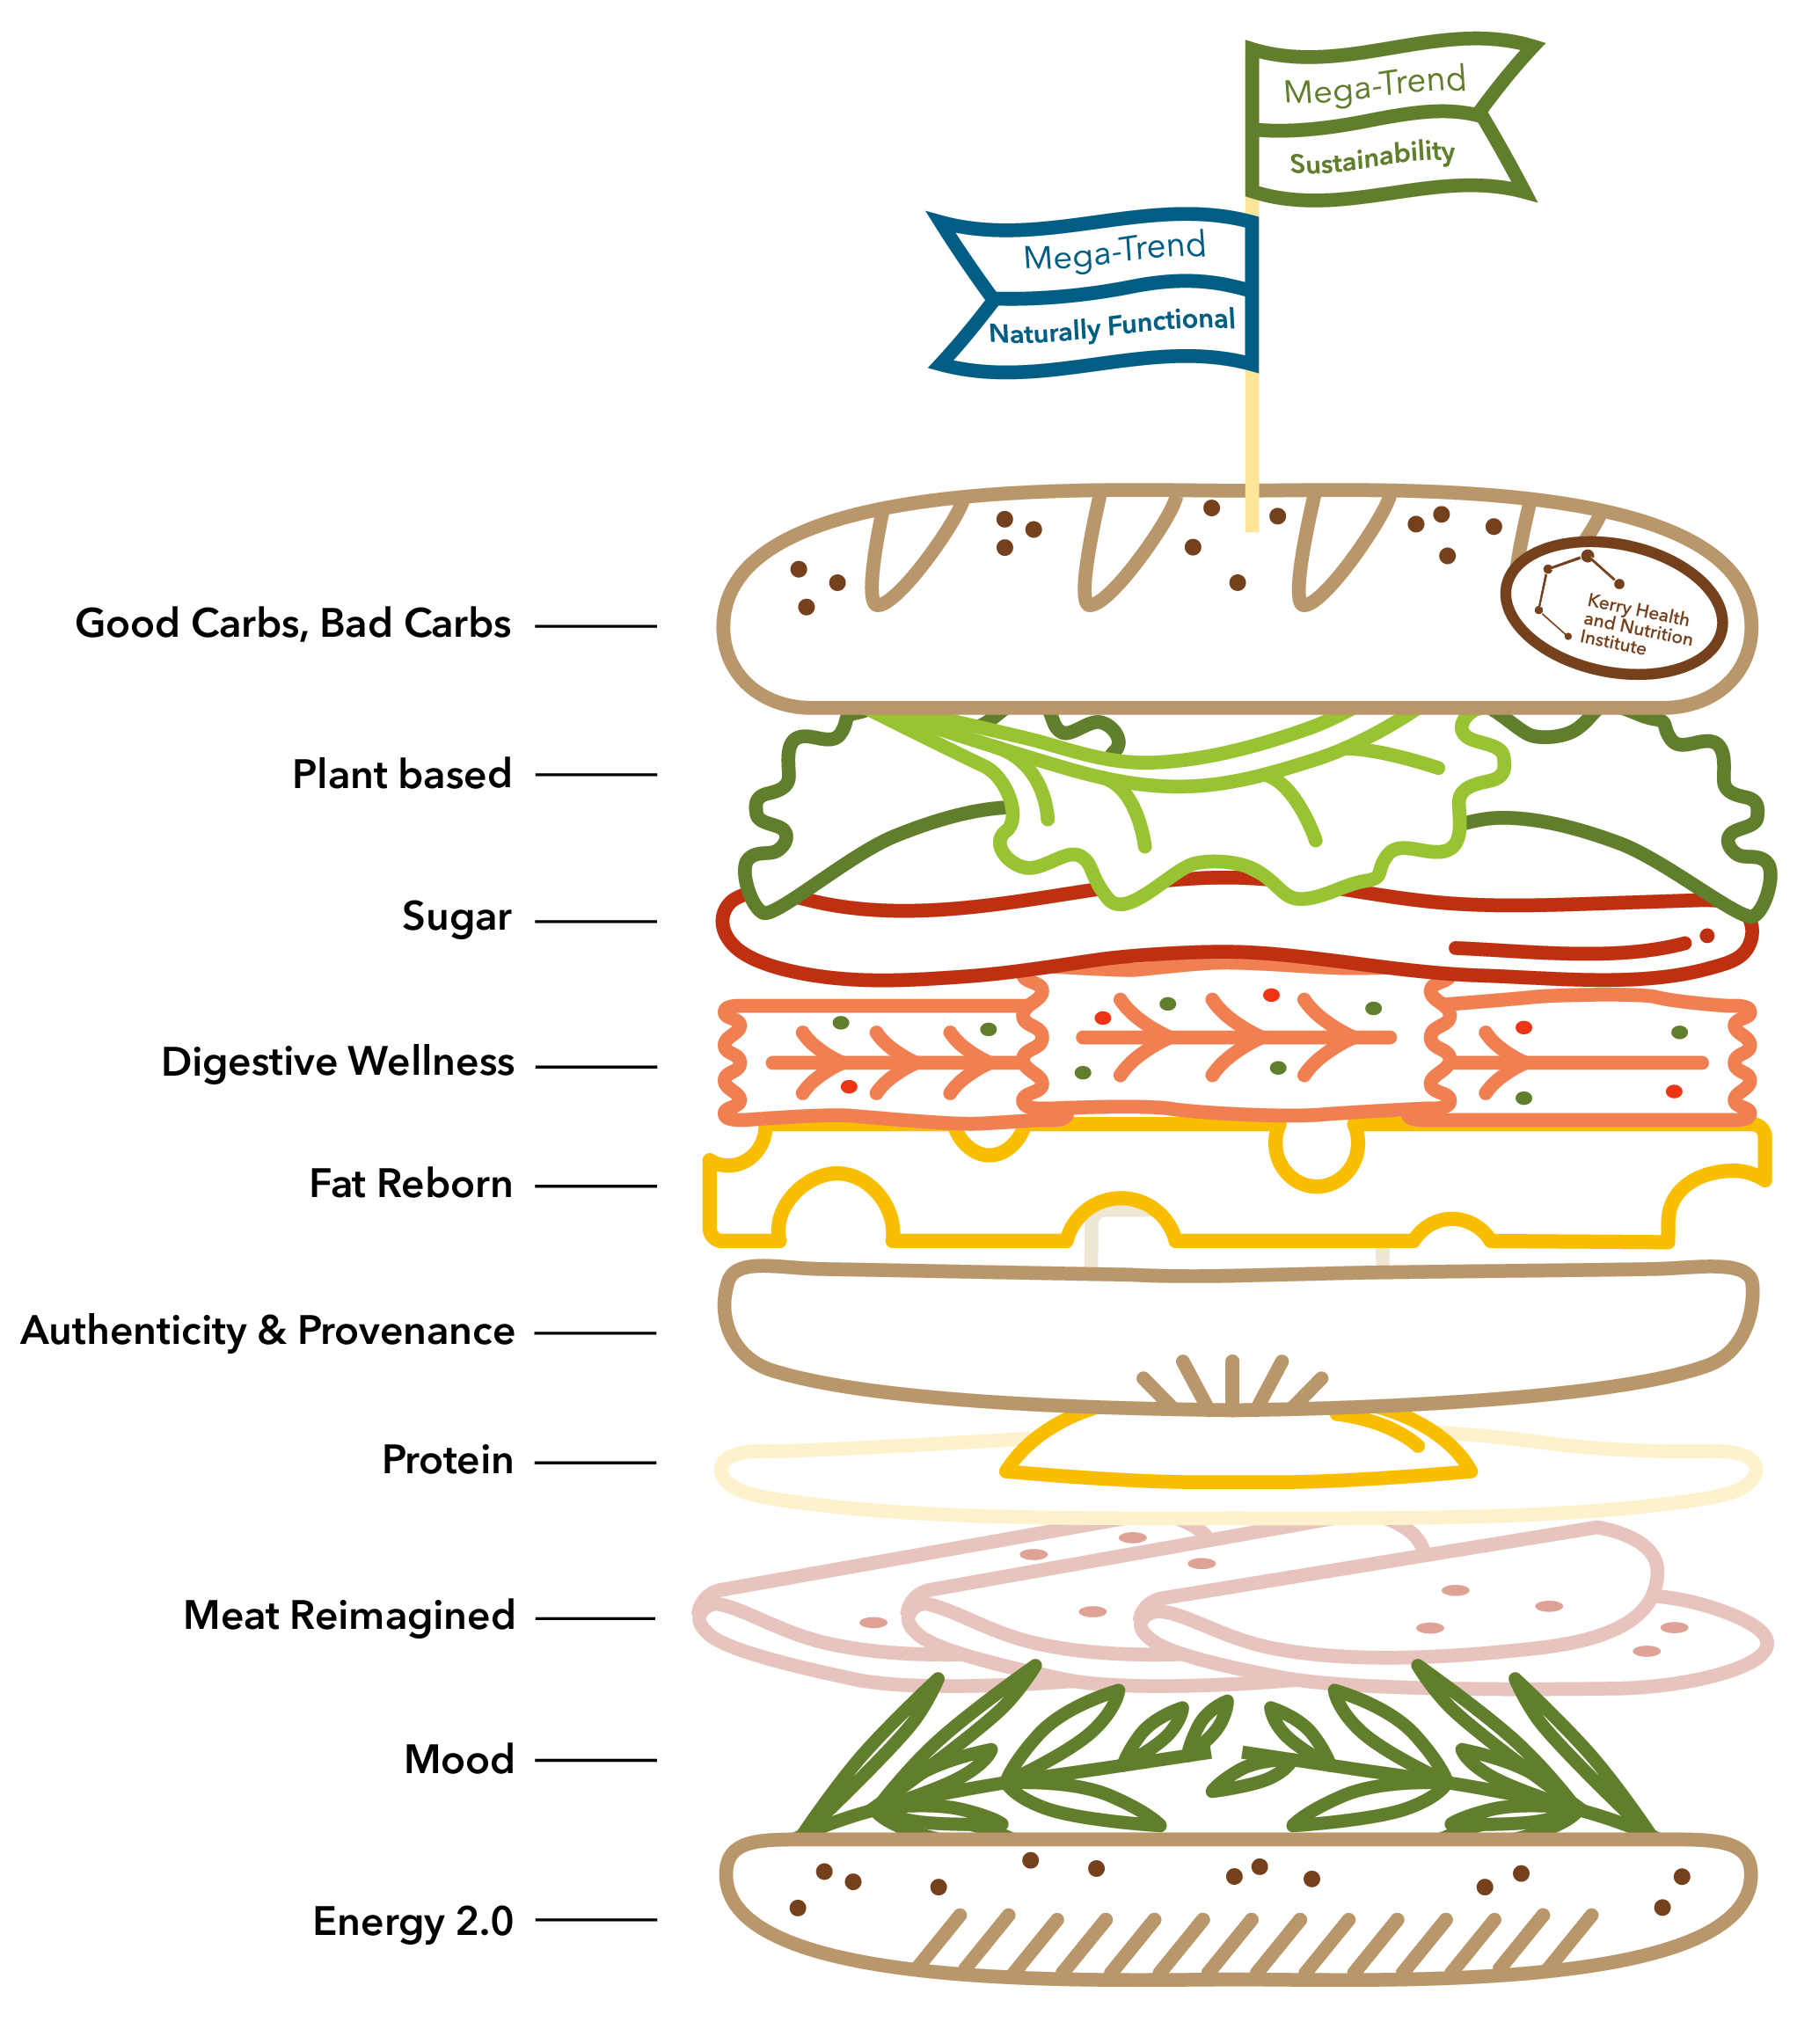 Image of sandwich with each layer representing a key trend